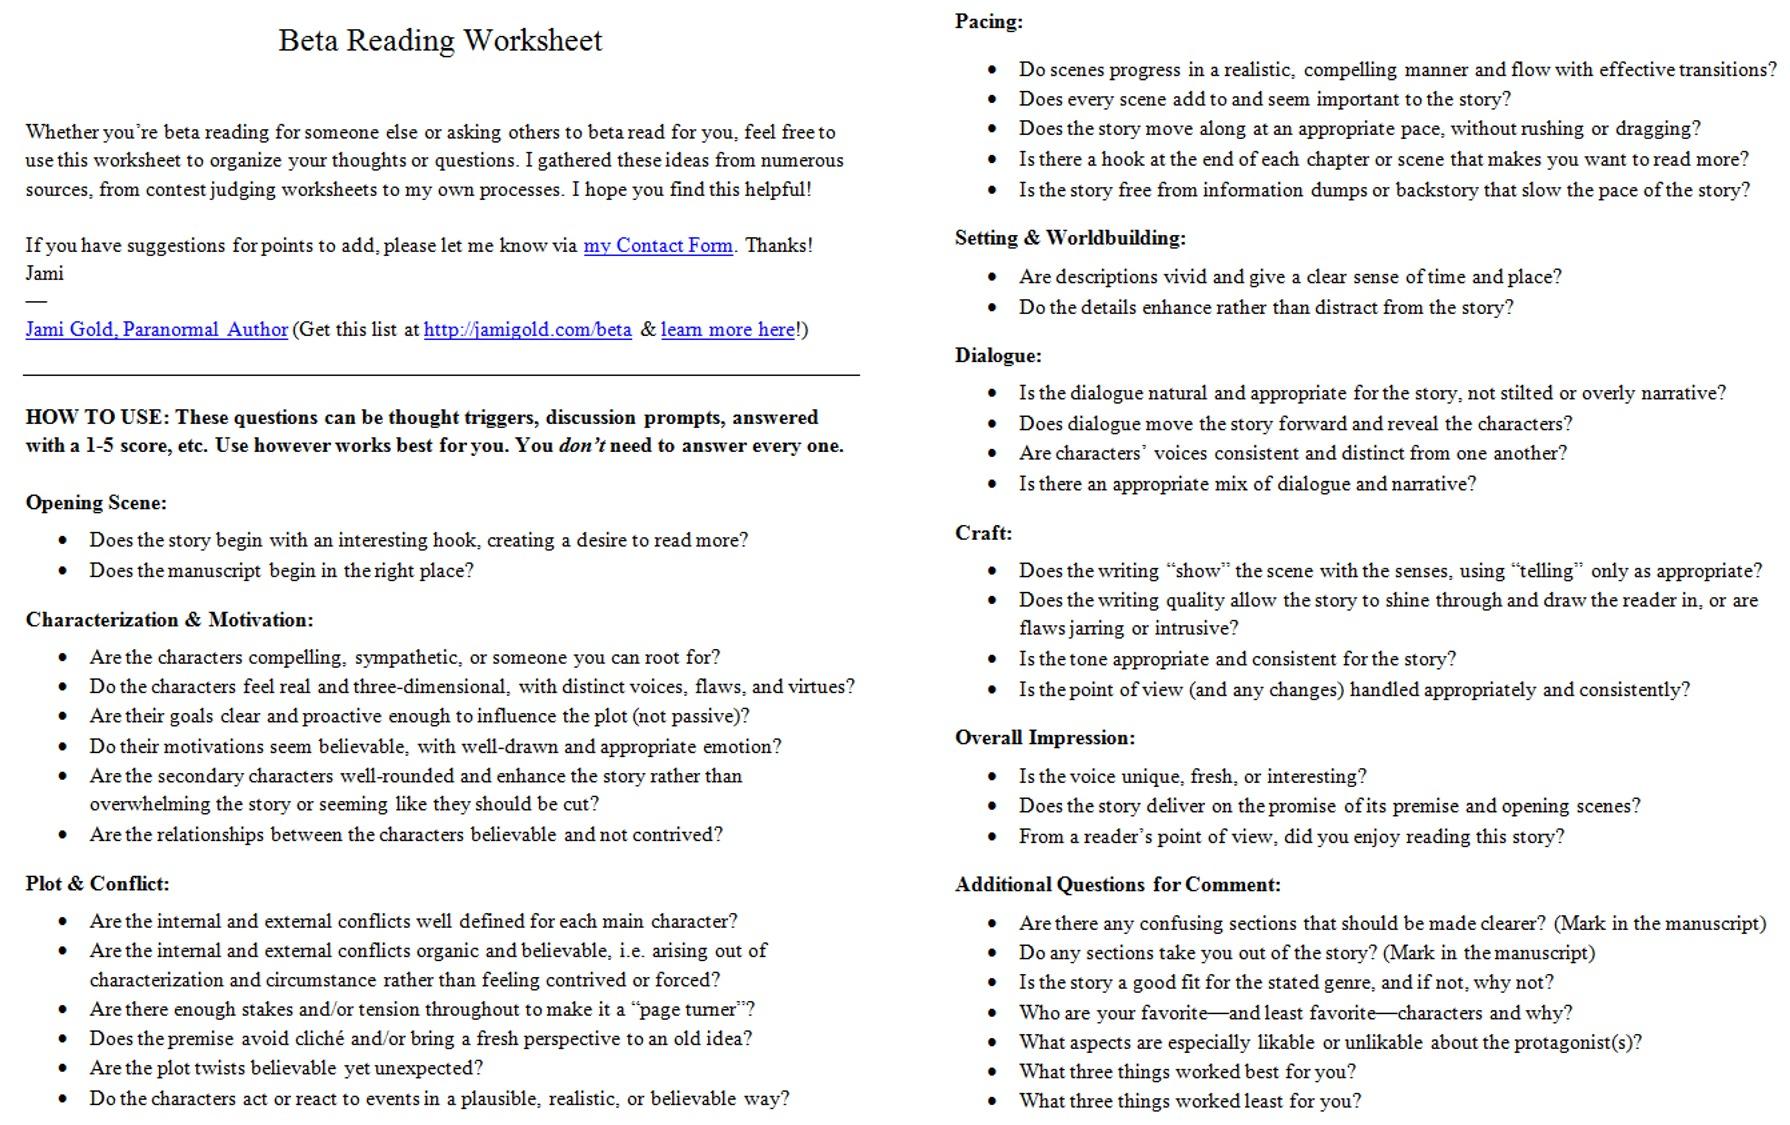 Aldiablosus  Wonderful Worksheets For Writers  Jami Gold Paranormal Author With Exciting Screen Shot Of The Twopage Beta Reading Worksheet With Enchanting Variable Worksheet Also Worksheet On Normal Distribution In Addition Veterans Day Worksheets Free And Aa Step  Worksheets As Well As Dividing A Decimal By A Decimal Worksheet Additionally Free Printable Cursive Writing Worksheets From Jamigoldcom With Aldiablosus  Exciting Worksheets For Writers  Jami Gold Paranormal Author With Enchanting Screen Shot Of The Twopage Beta Reading Worksheet And Wonderful Variable Worksheet Also Worksheet On Normal Distribution In Addition Veterans Day Worksheets Free From Jamigoldcom